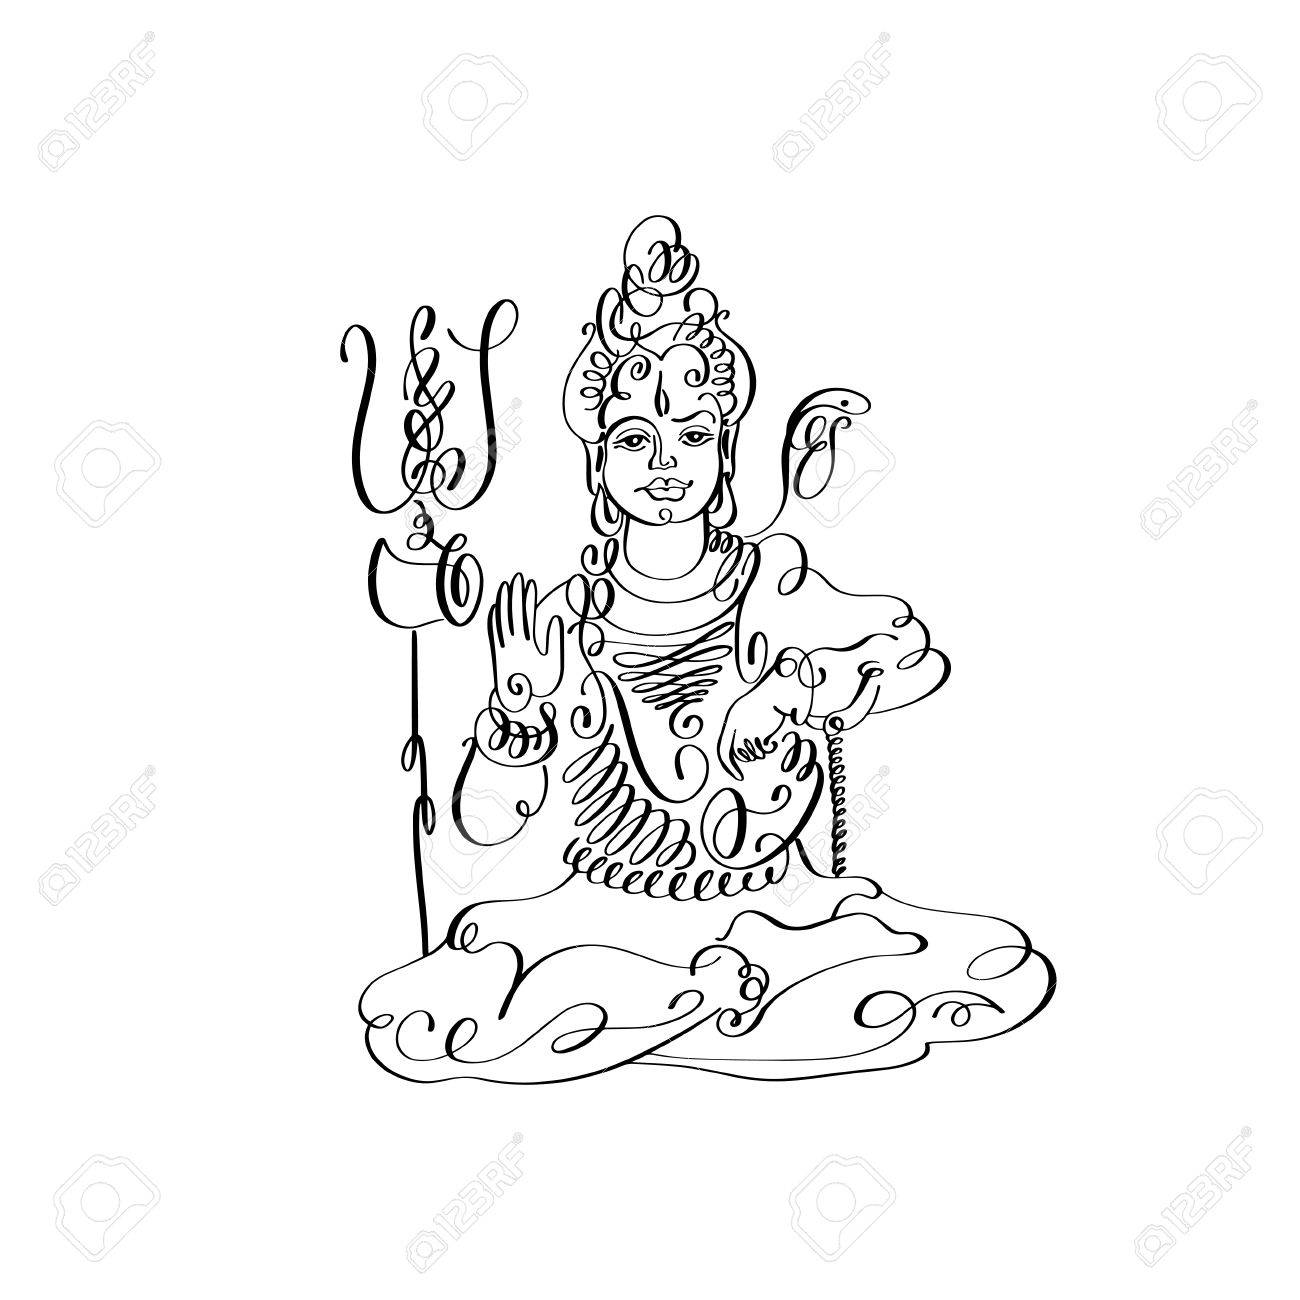 Line art lord shiva black and white calligraphic drawing stock photo 70447054